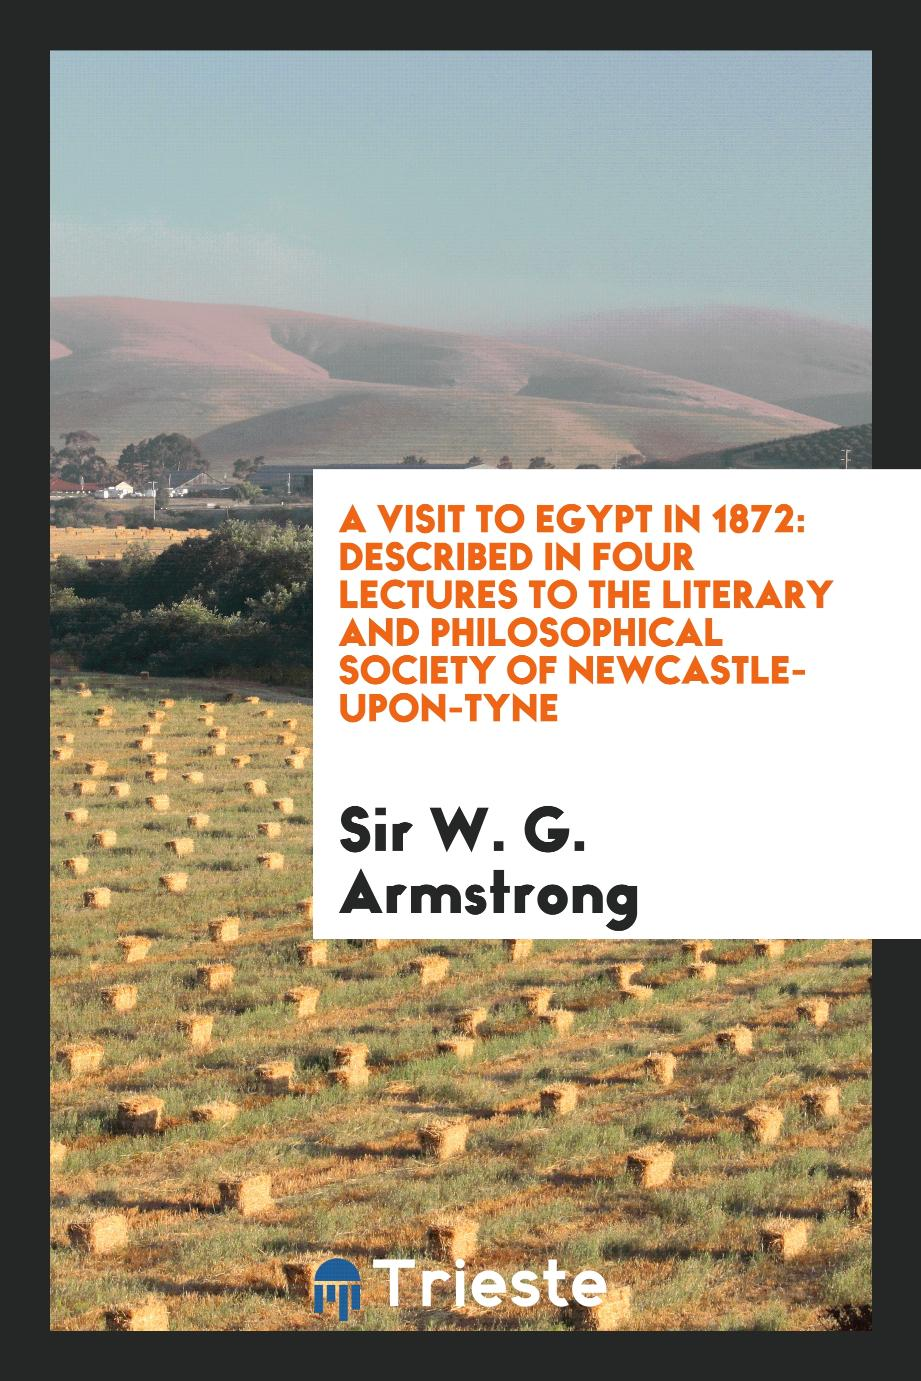 A Visit to Egypt in 1872: Described in Four Lectures to the Literary and Philosophical Society of Newcastle-Upon-Tyne